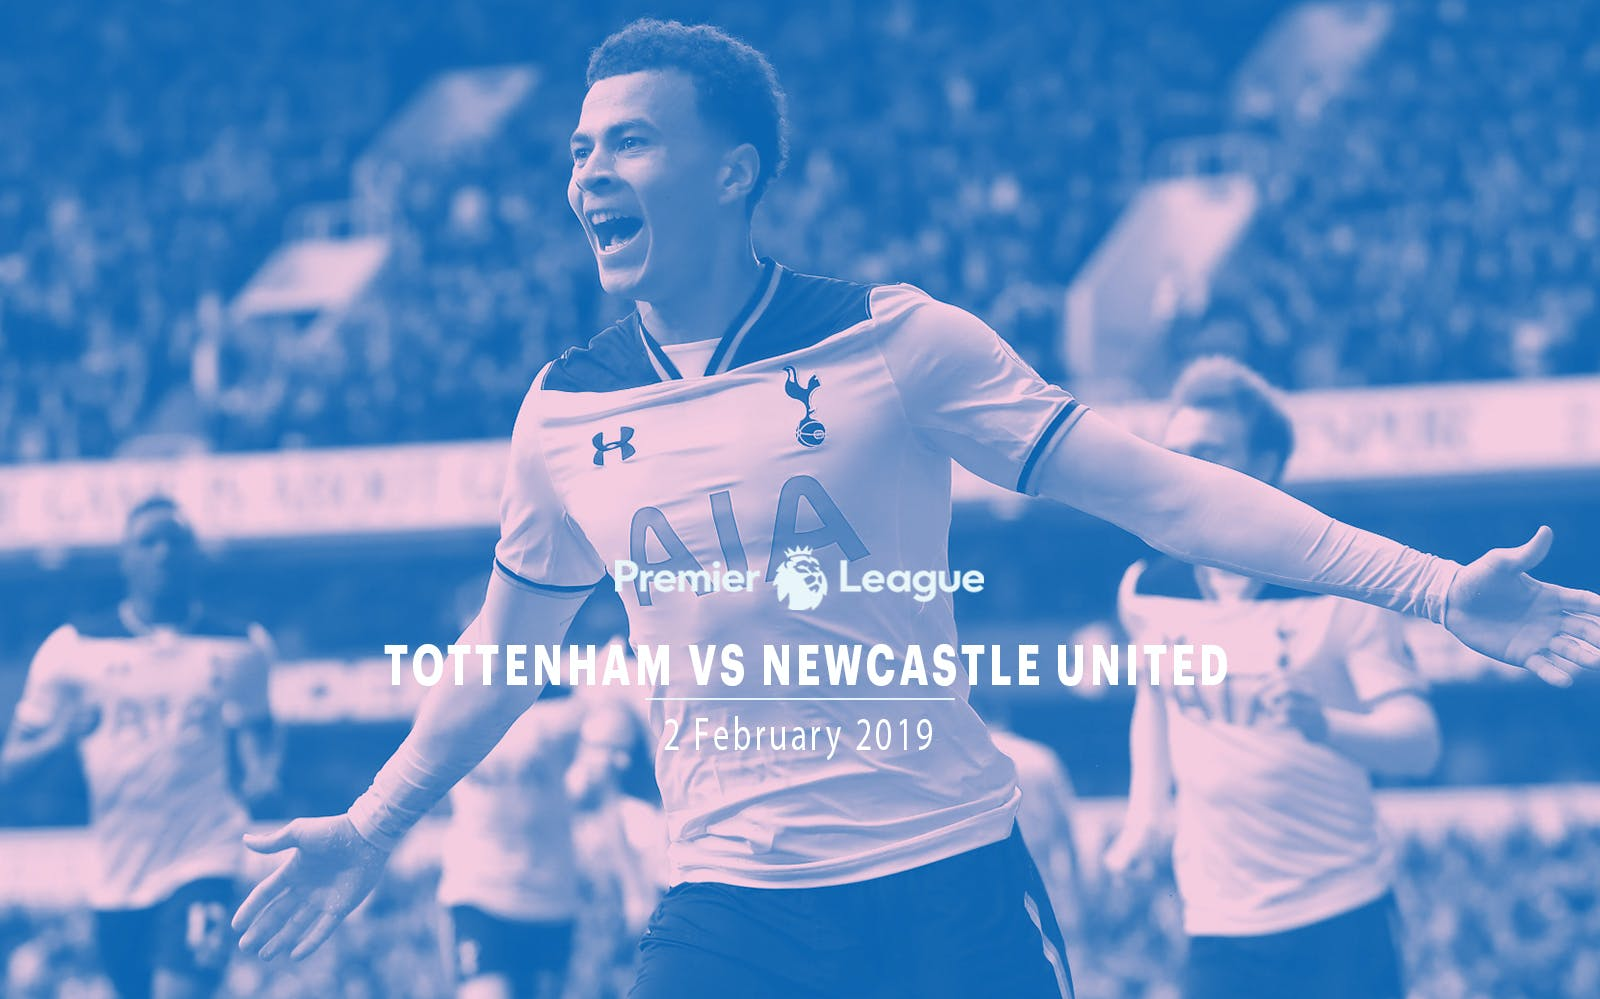 tottenham vs newcastle united - 2nd feb'19-1